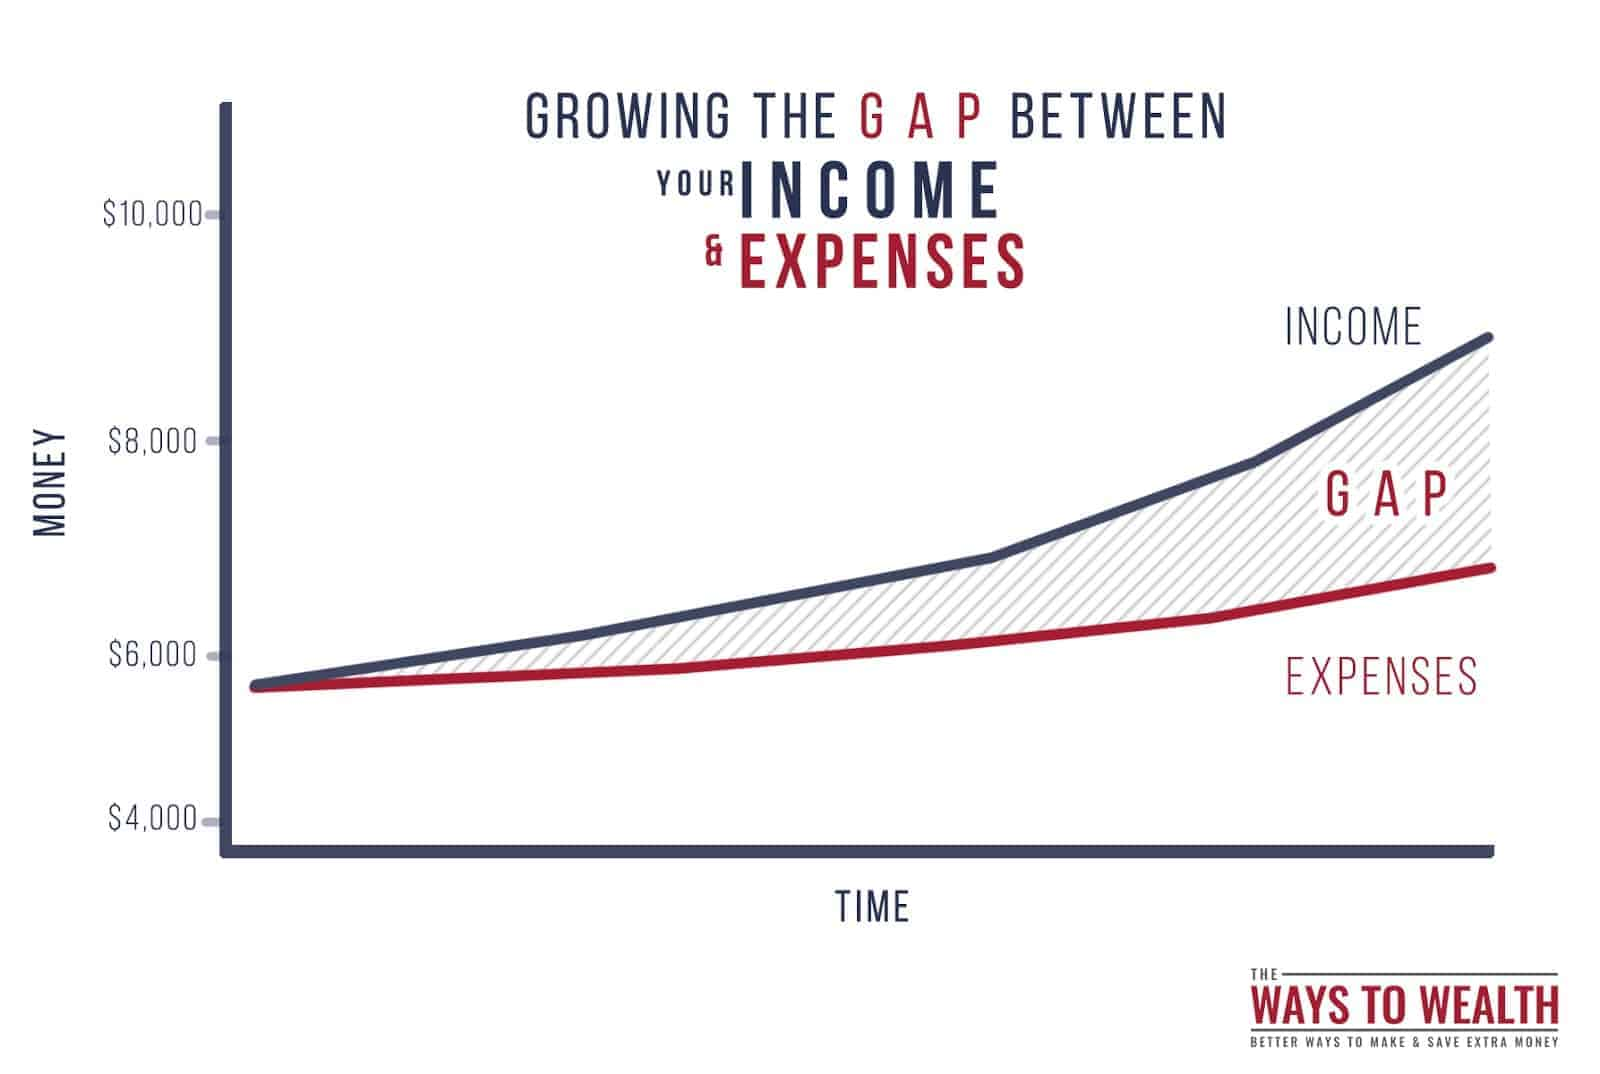 the gap between your income and expenses